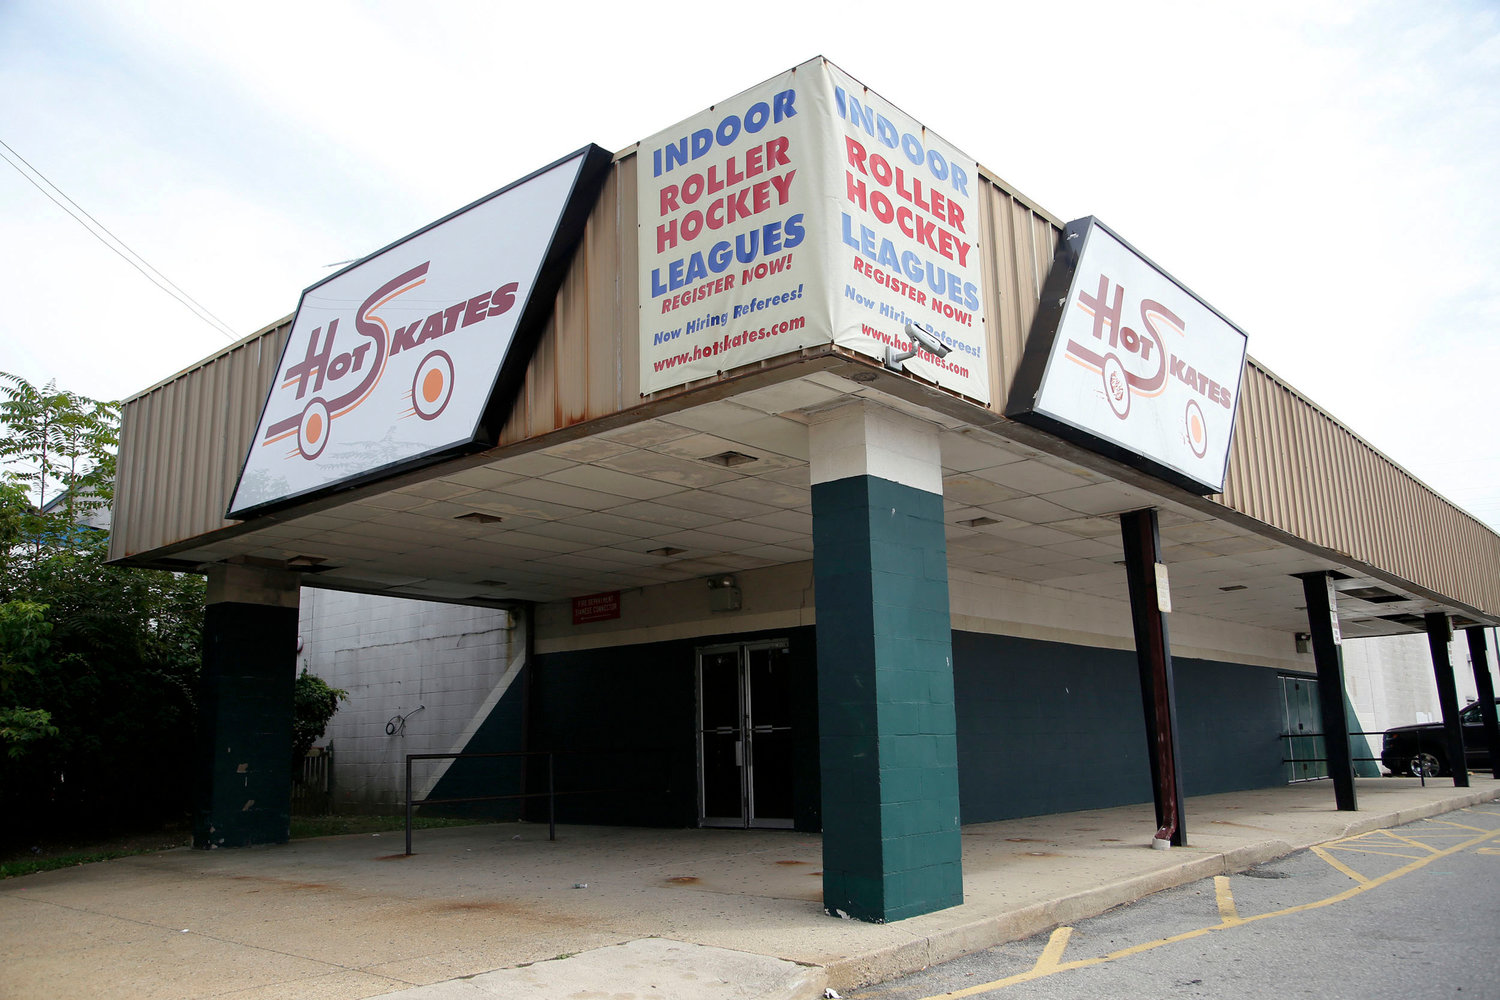 Georgia-based Mequity Acquisitions LLC is in the process of purchasing Hot Skates, at 14 Merrick Road in Lynbrook, and plans to convert it into a storage facility.